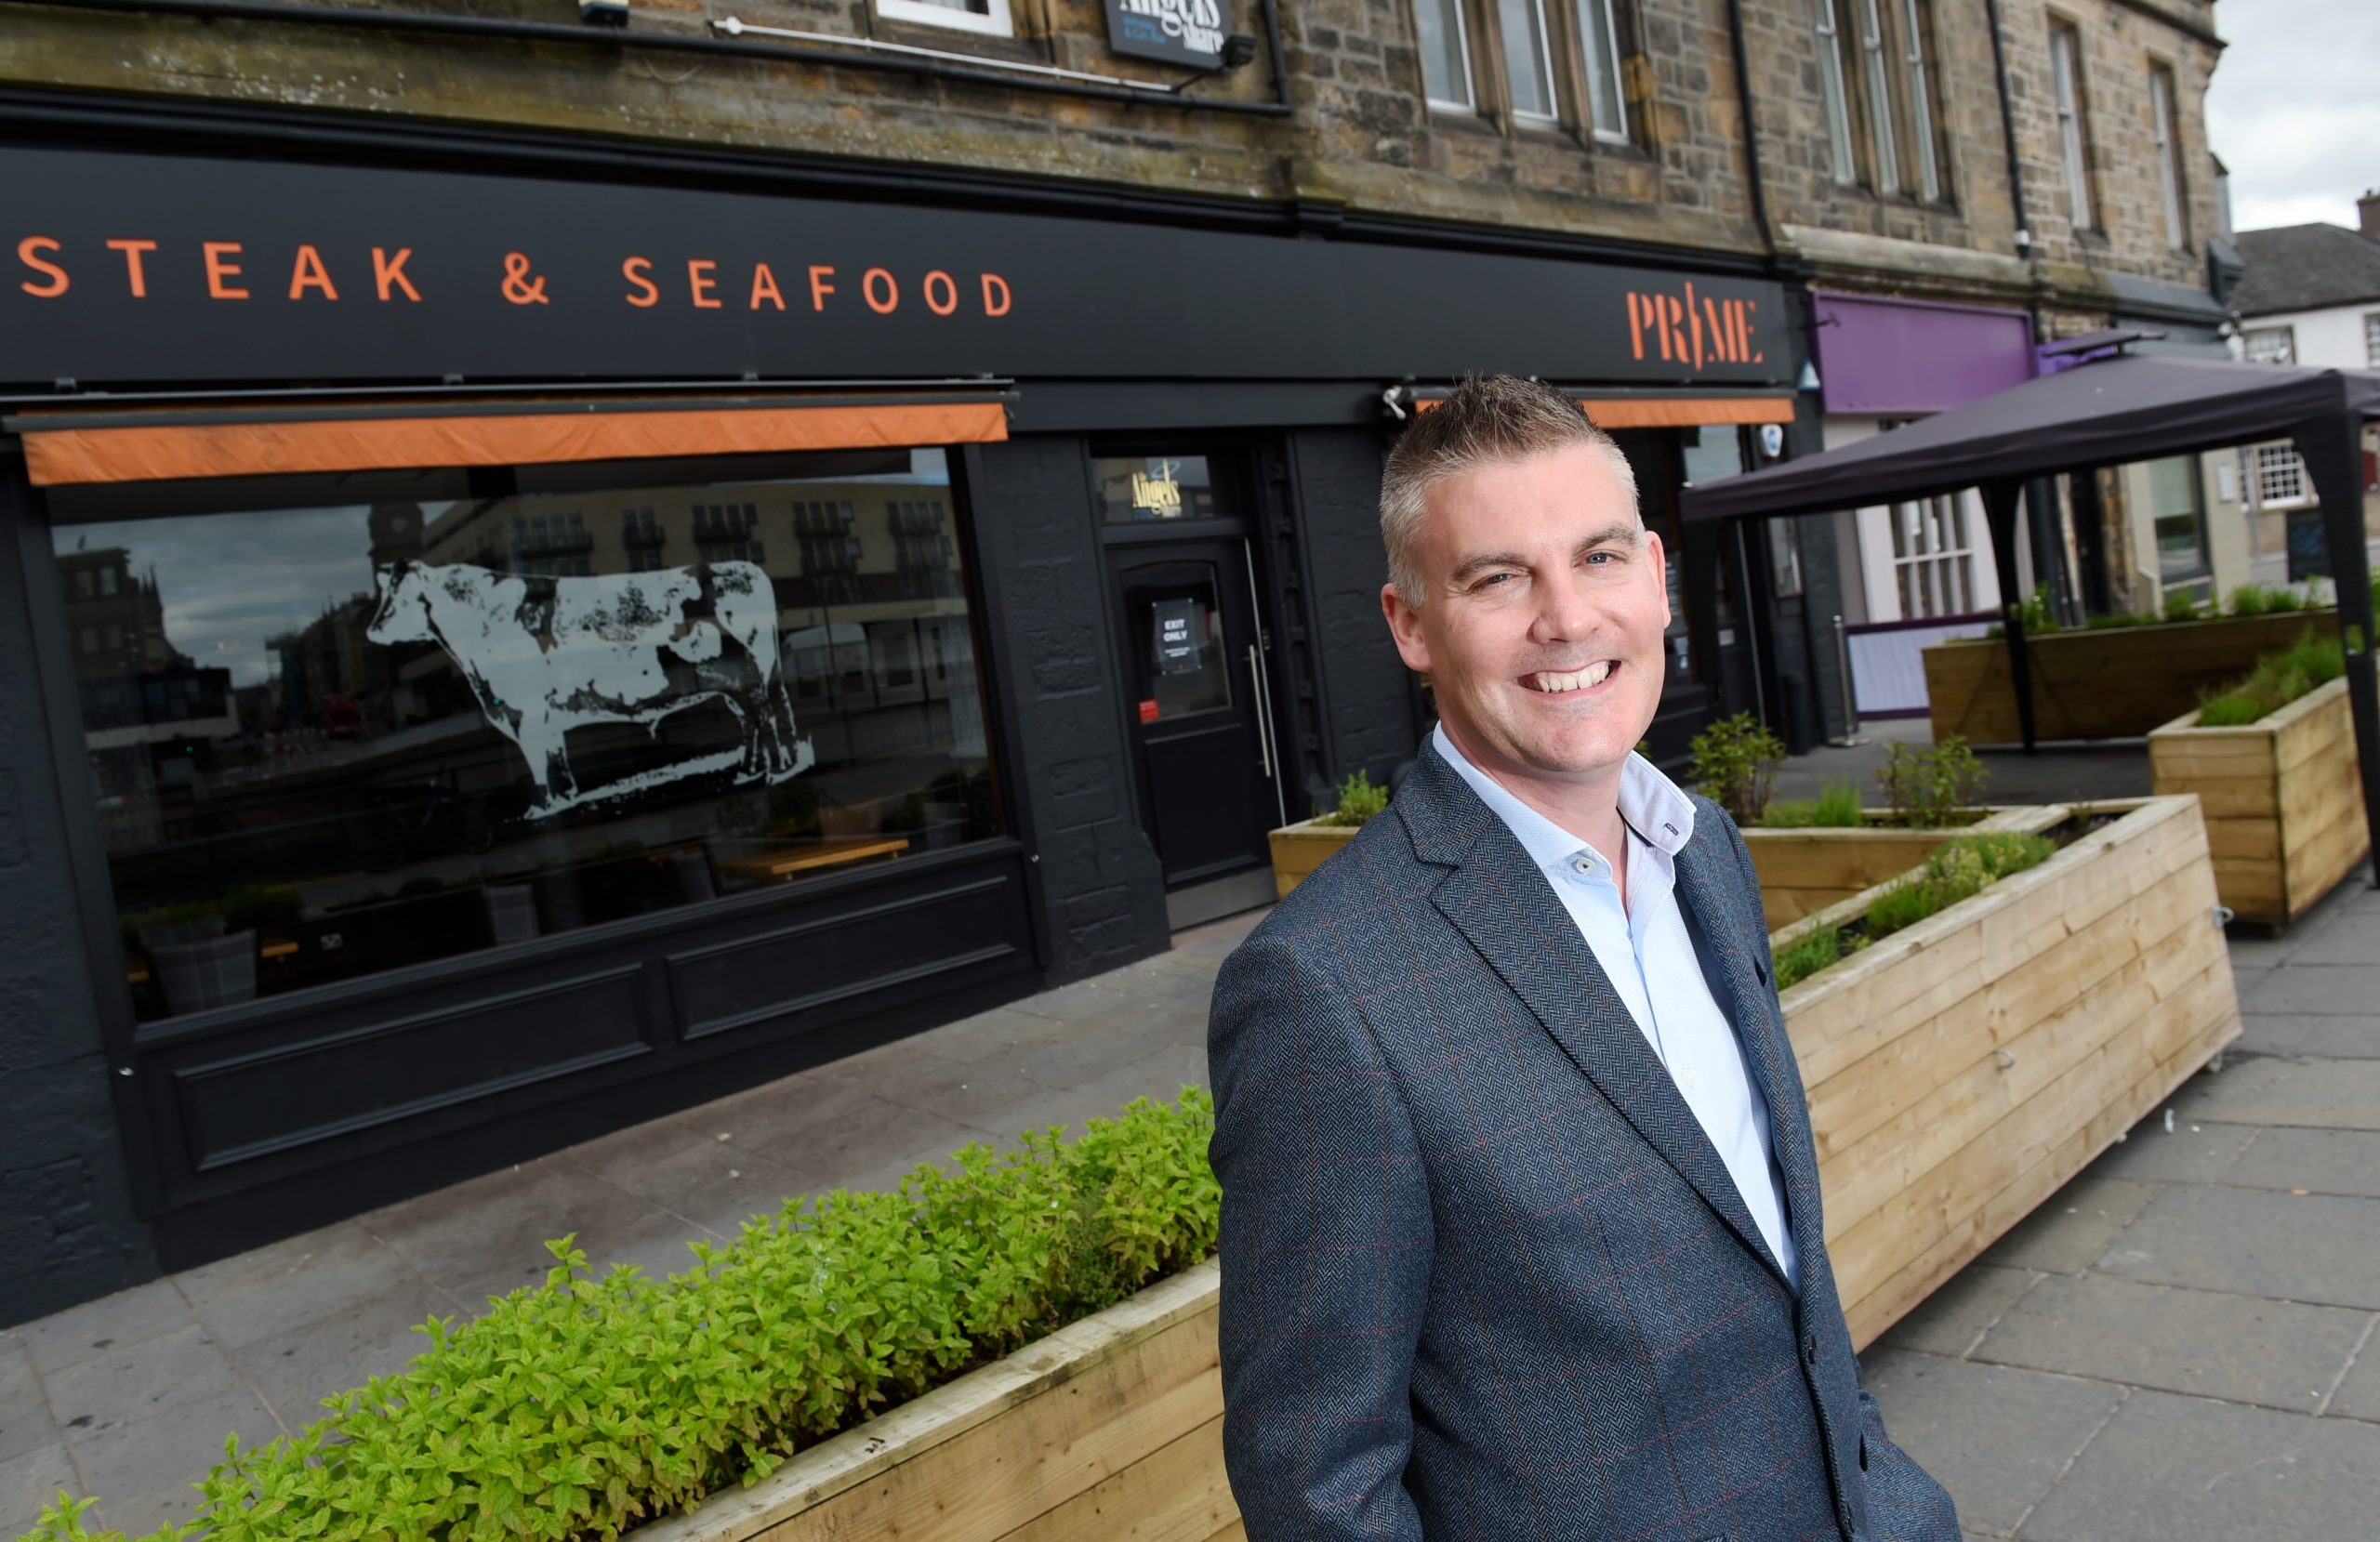 Scott Murray of Cru Holdings outside their Prime restaurant on Ness Walk in Inverness.